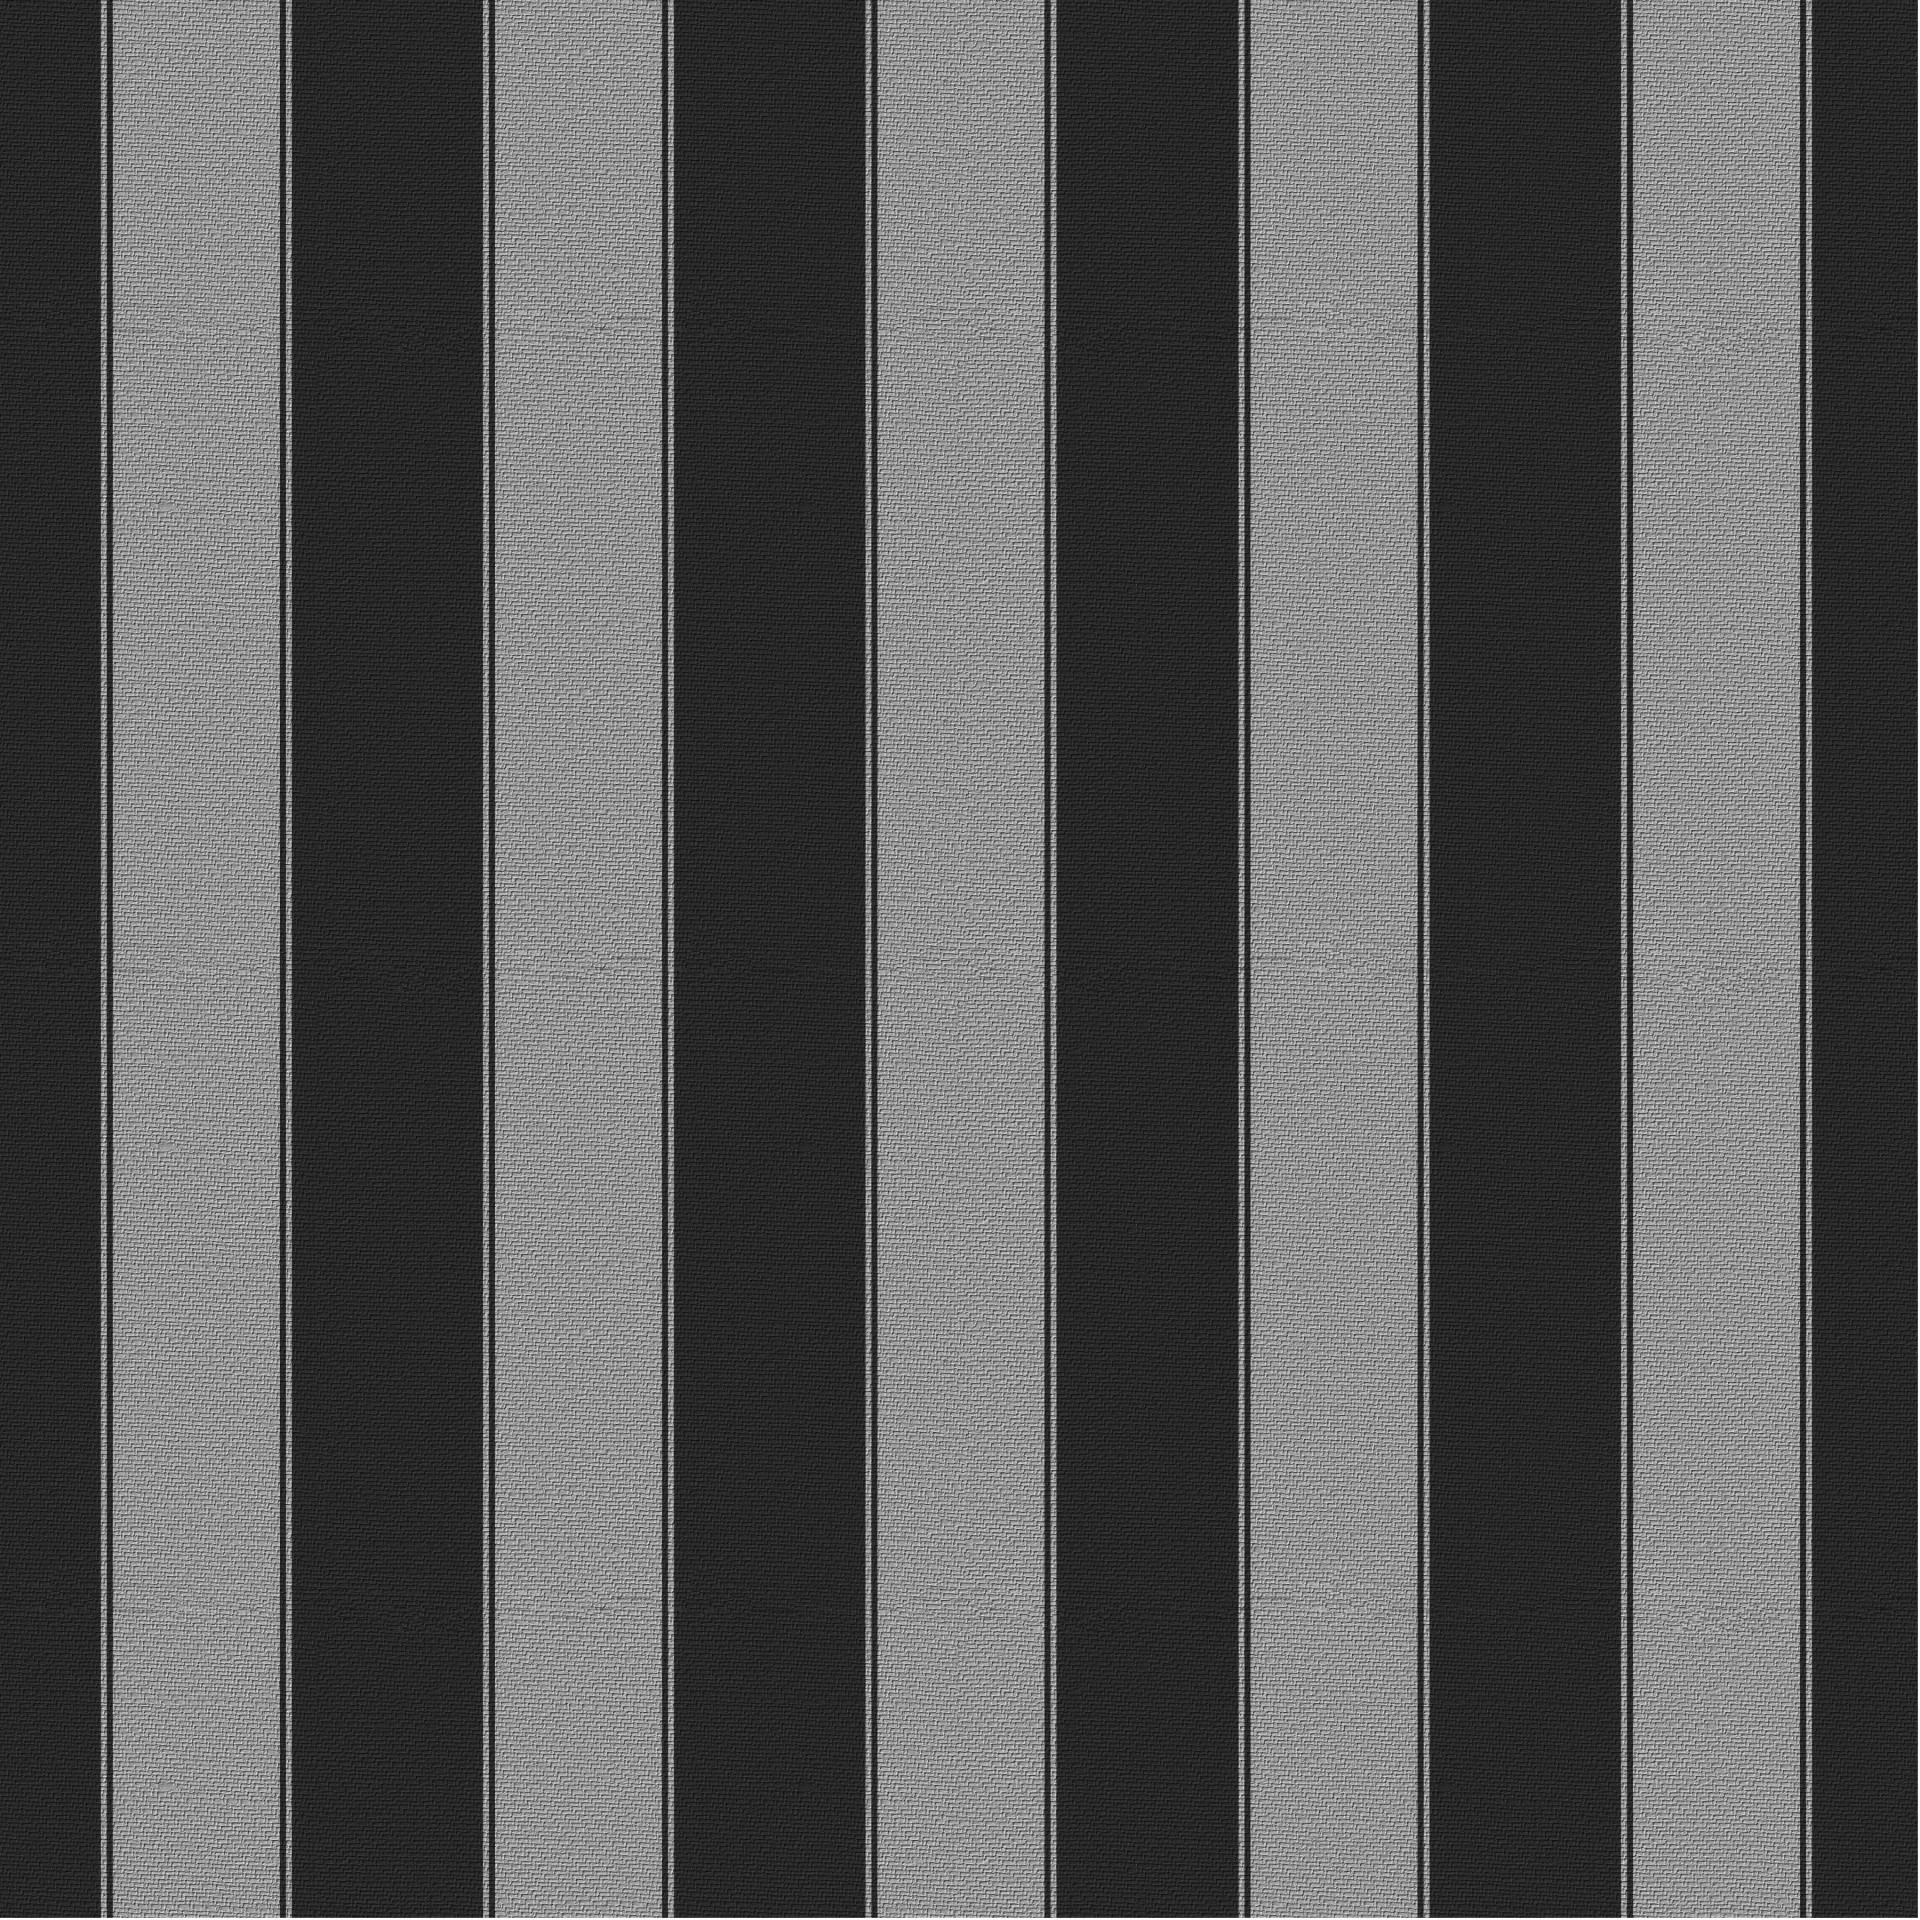 Gray Black White And Gold Bedroom: Black And White Striped Background ·① Download Free